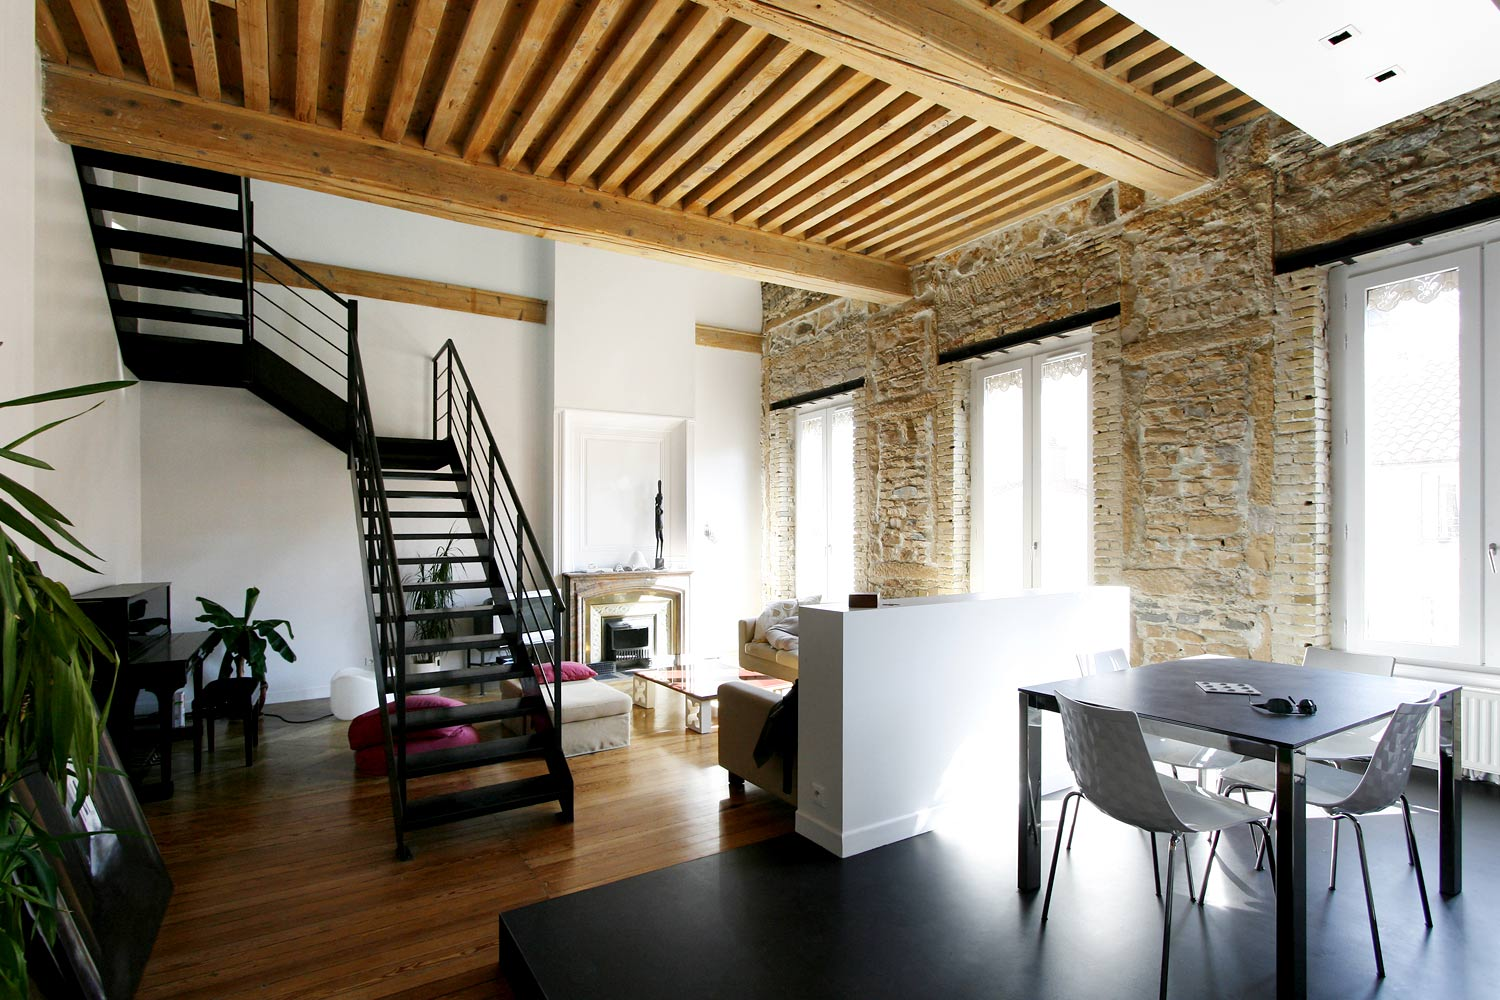 Location appartement La Rochelle : le confort du lieu